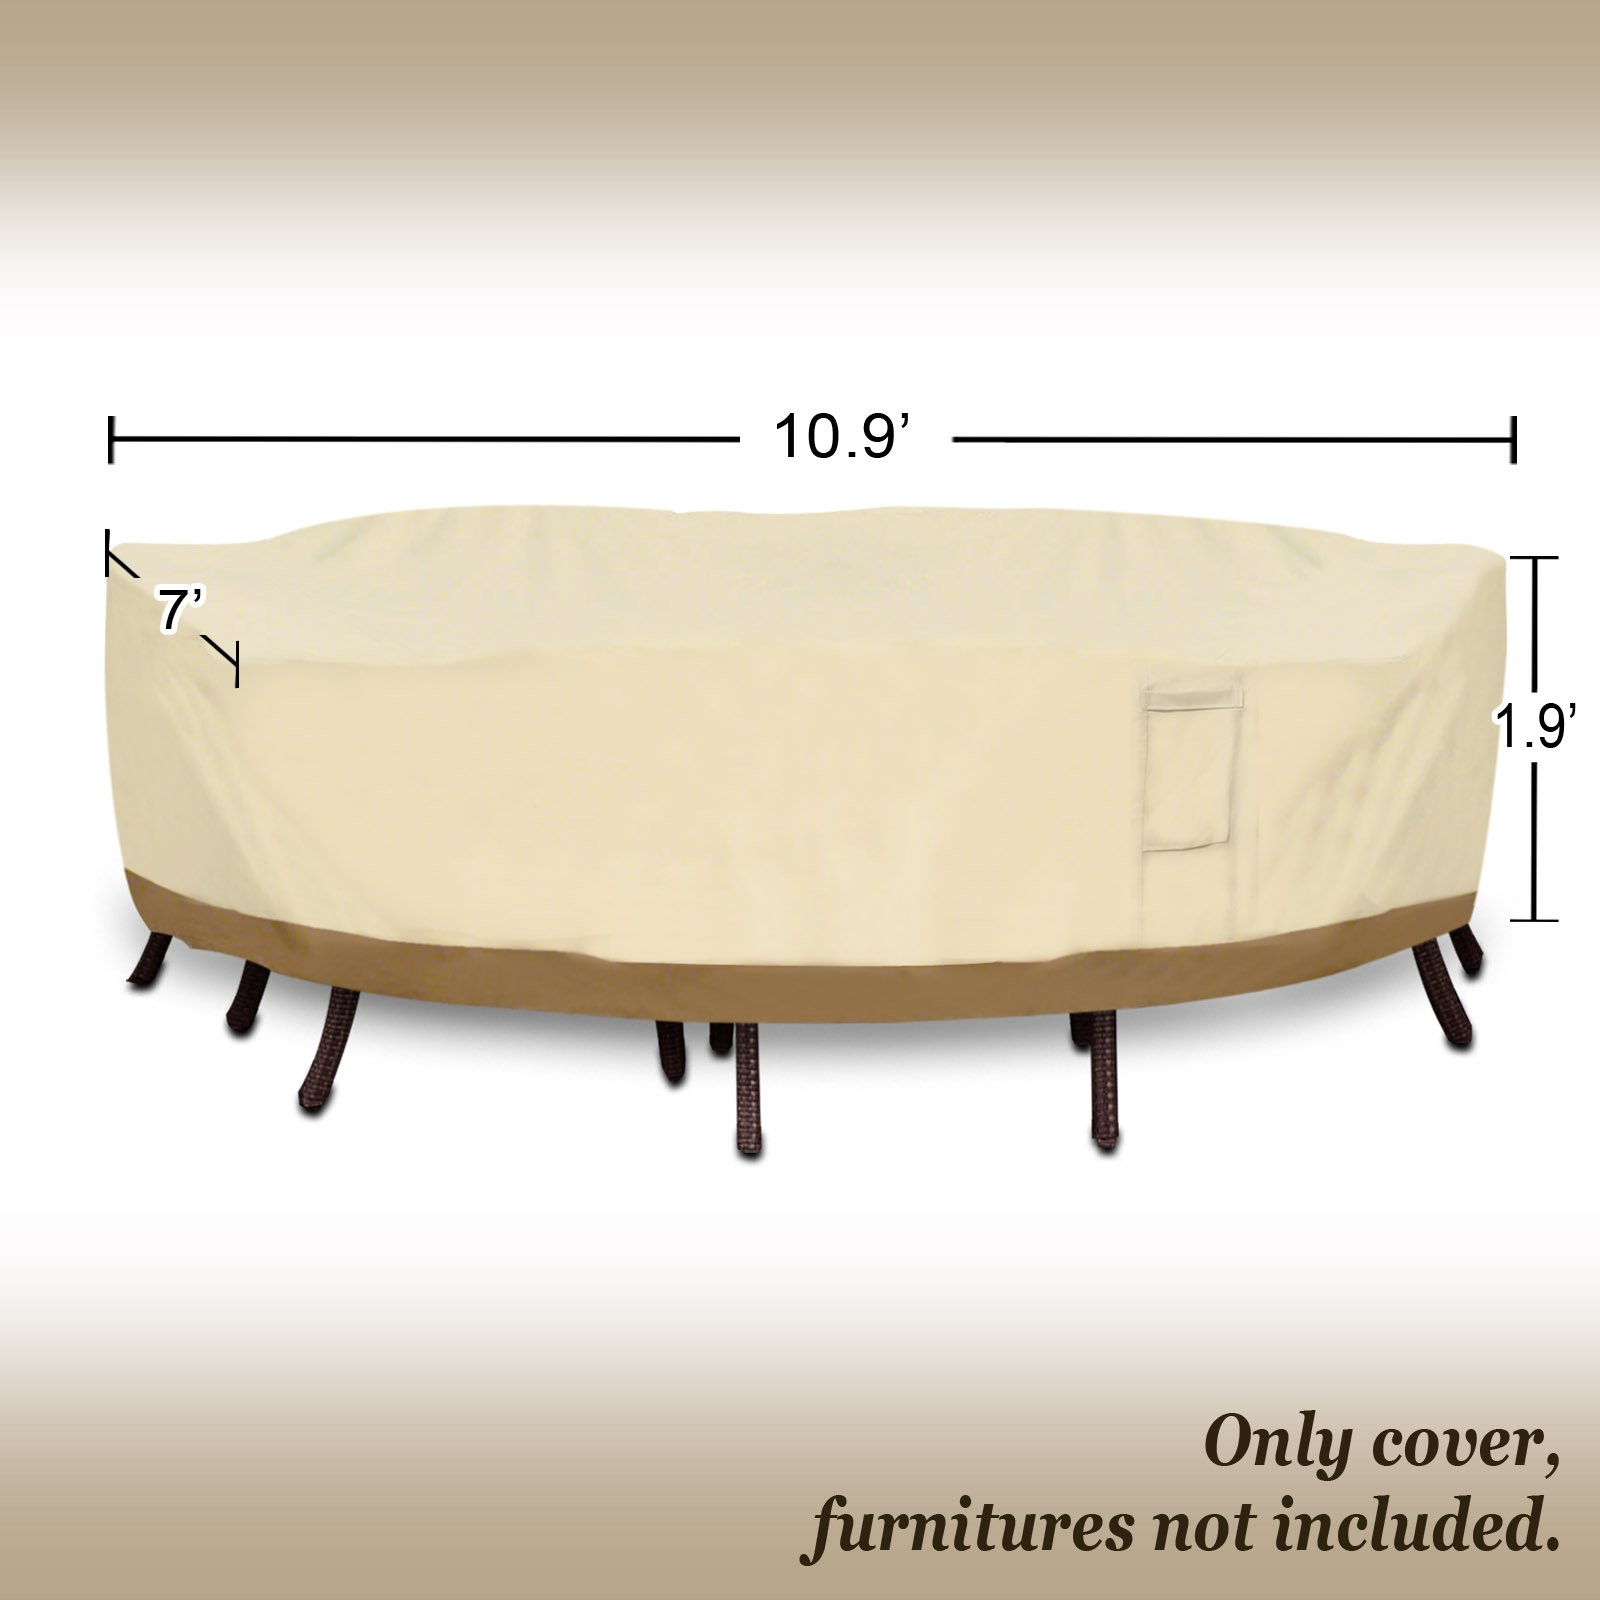 Strong Camel Rectangular Table/Chair 130'' L Cover Patio Garden Outdoor Furniture Winter Protect Large by Strong Camel (Image #2)